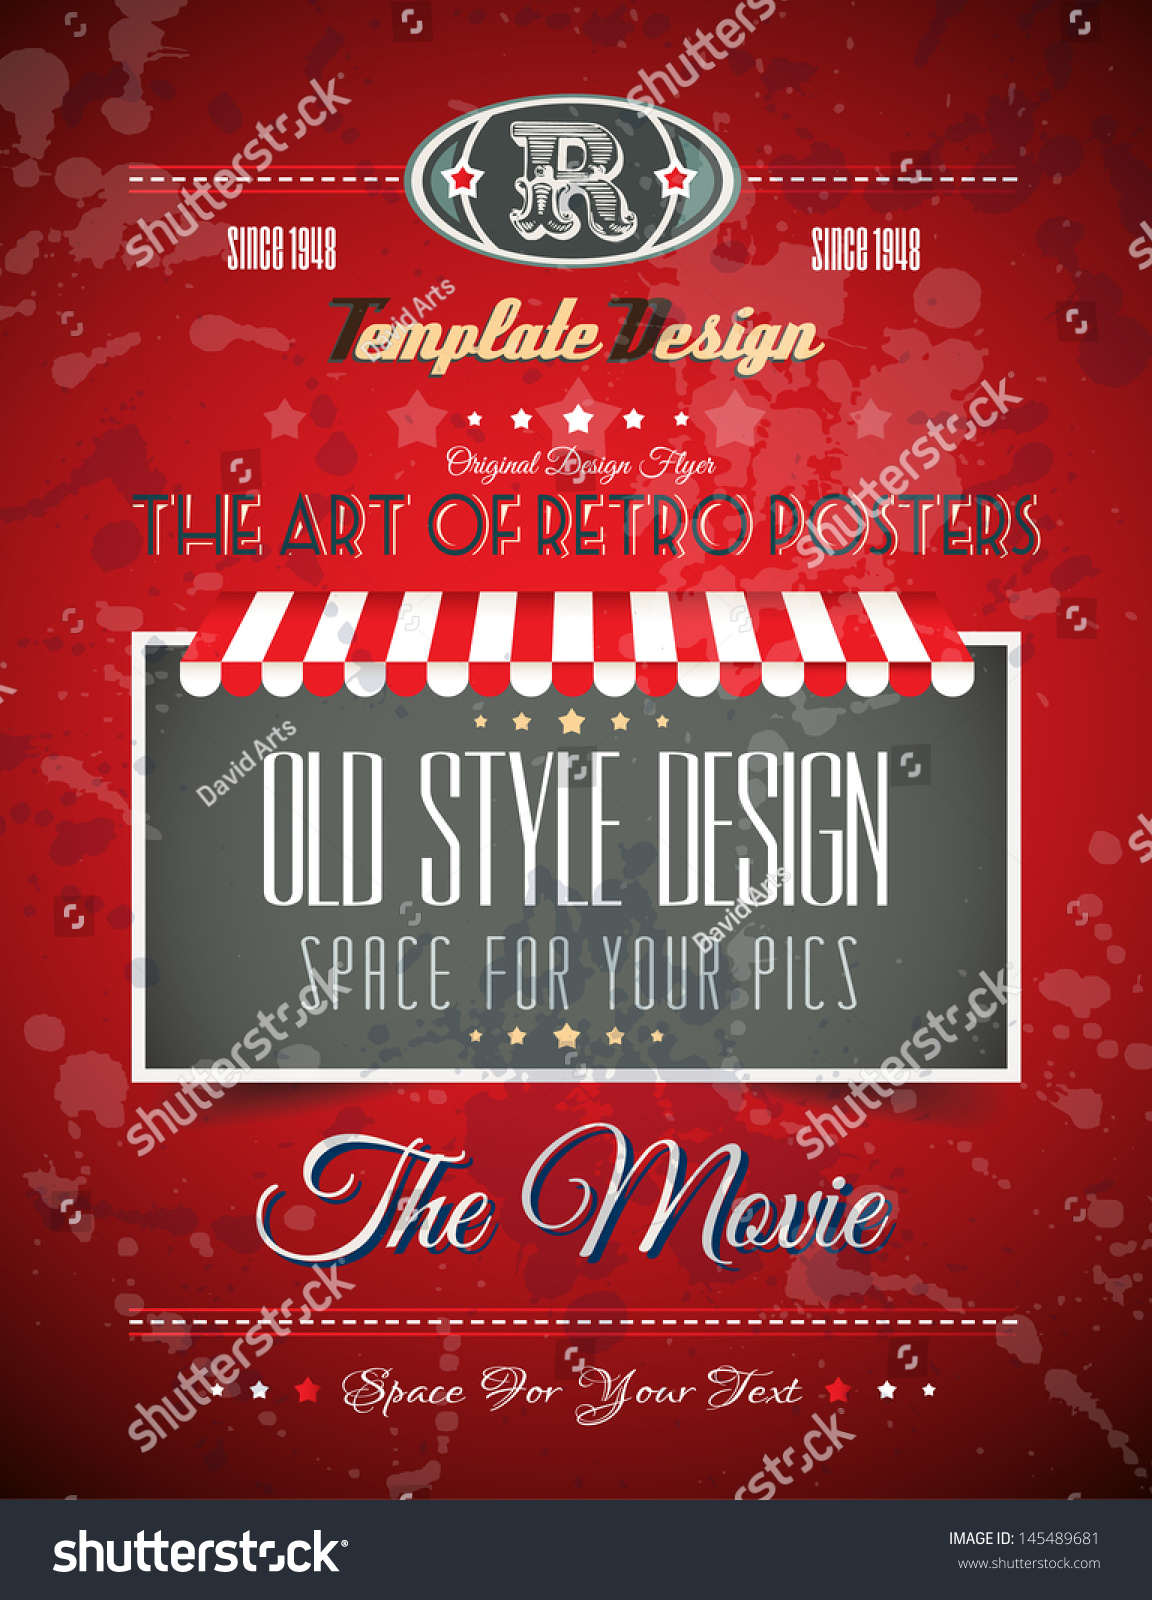 vintage retro page template for a variety of purposes website home